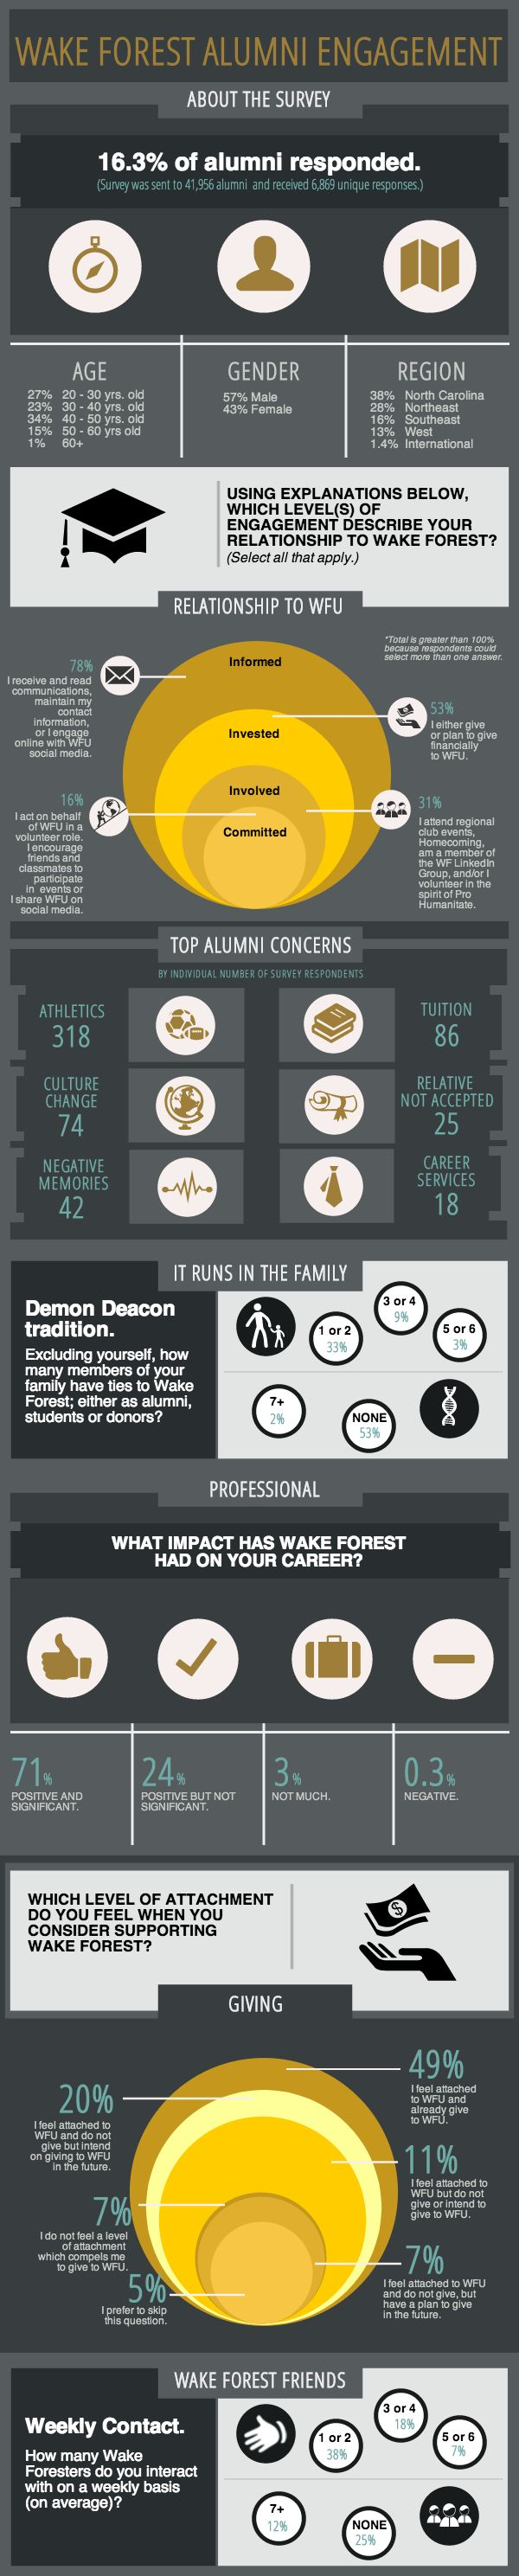 fundraising infographic u0026 data Cool Infographic on